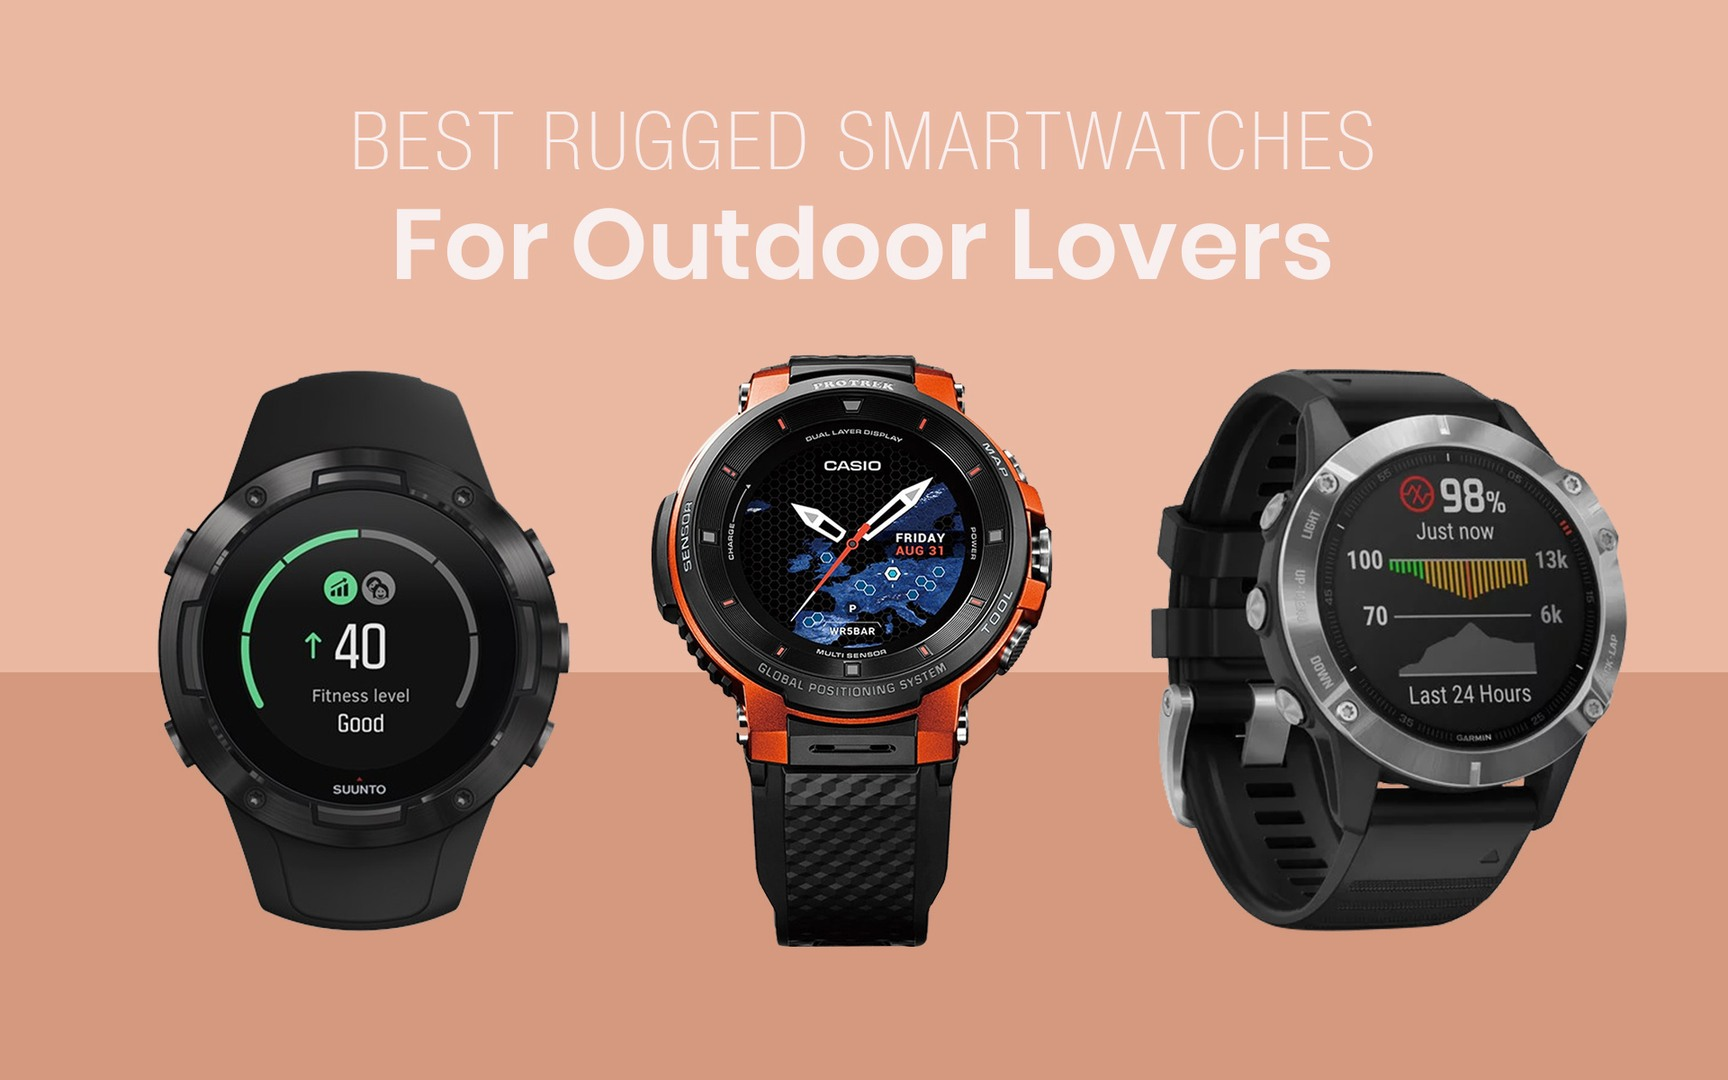 Best Rugged Smartwatches For Outdoor Lovers